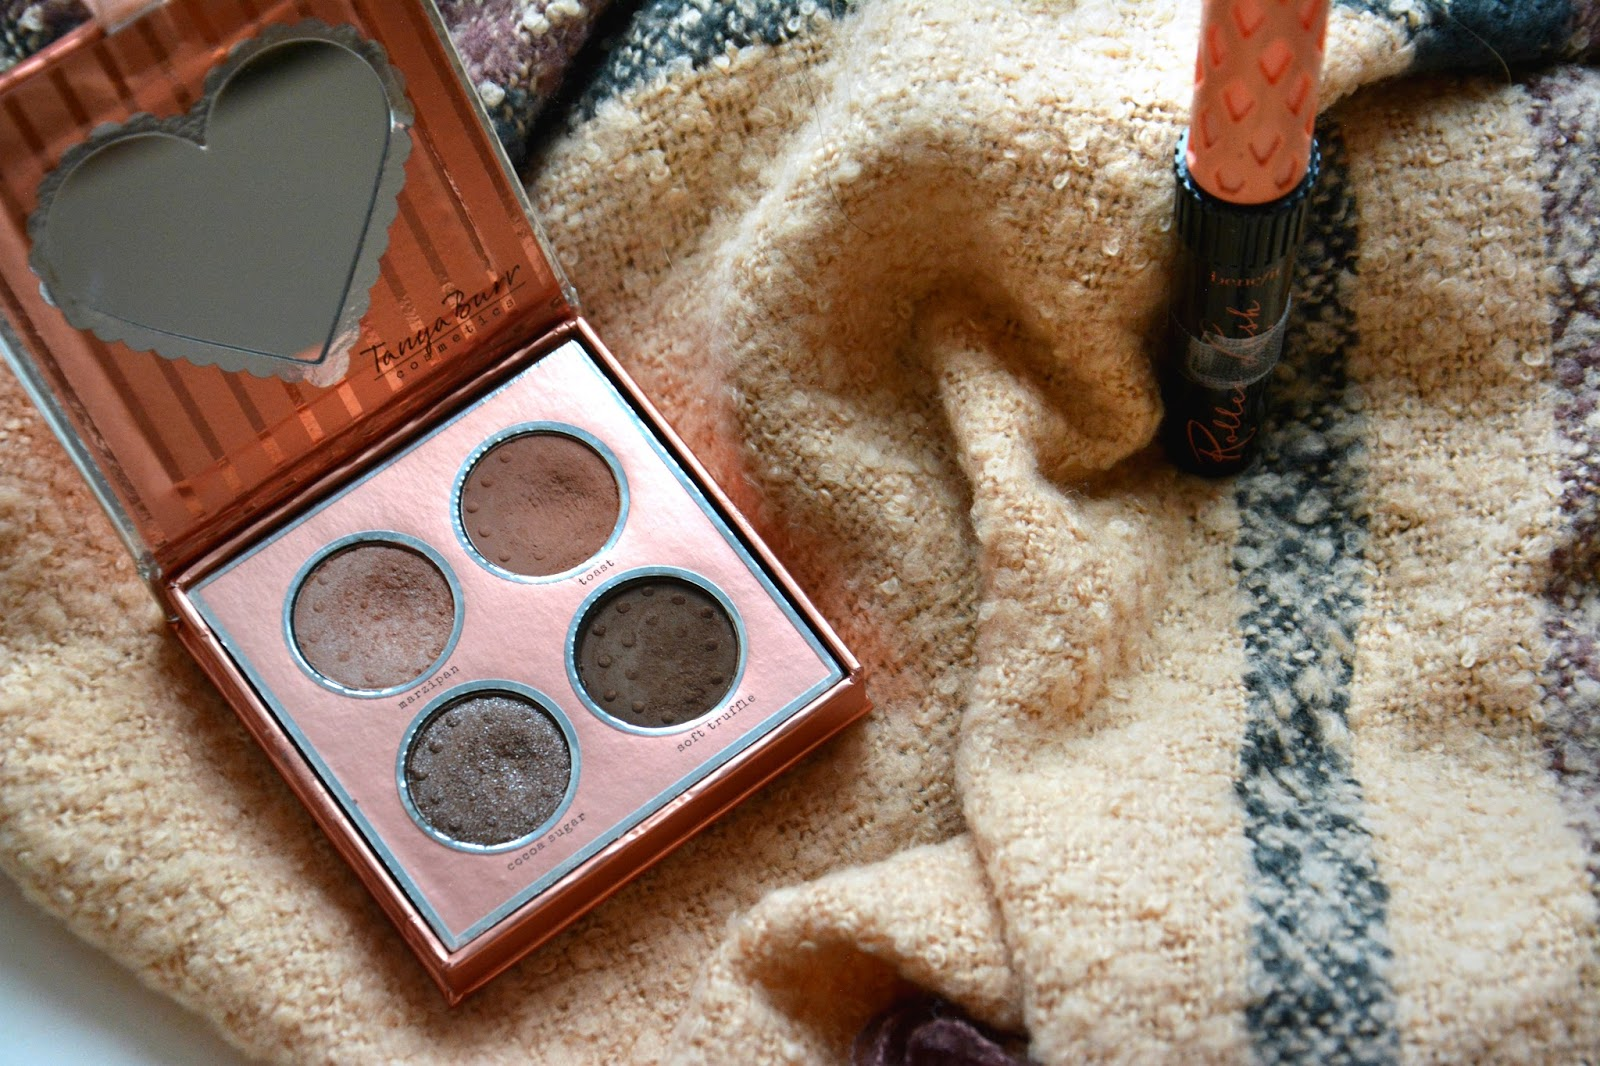 Tanya Burr Cosmetics Birthday Suit Eye Palette, Benefit Rollerlash Mascara